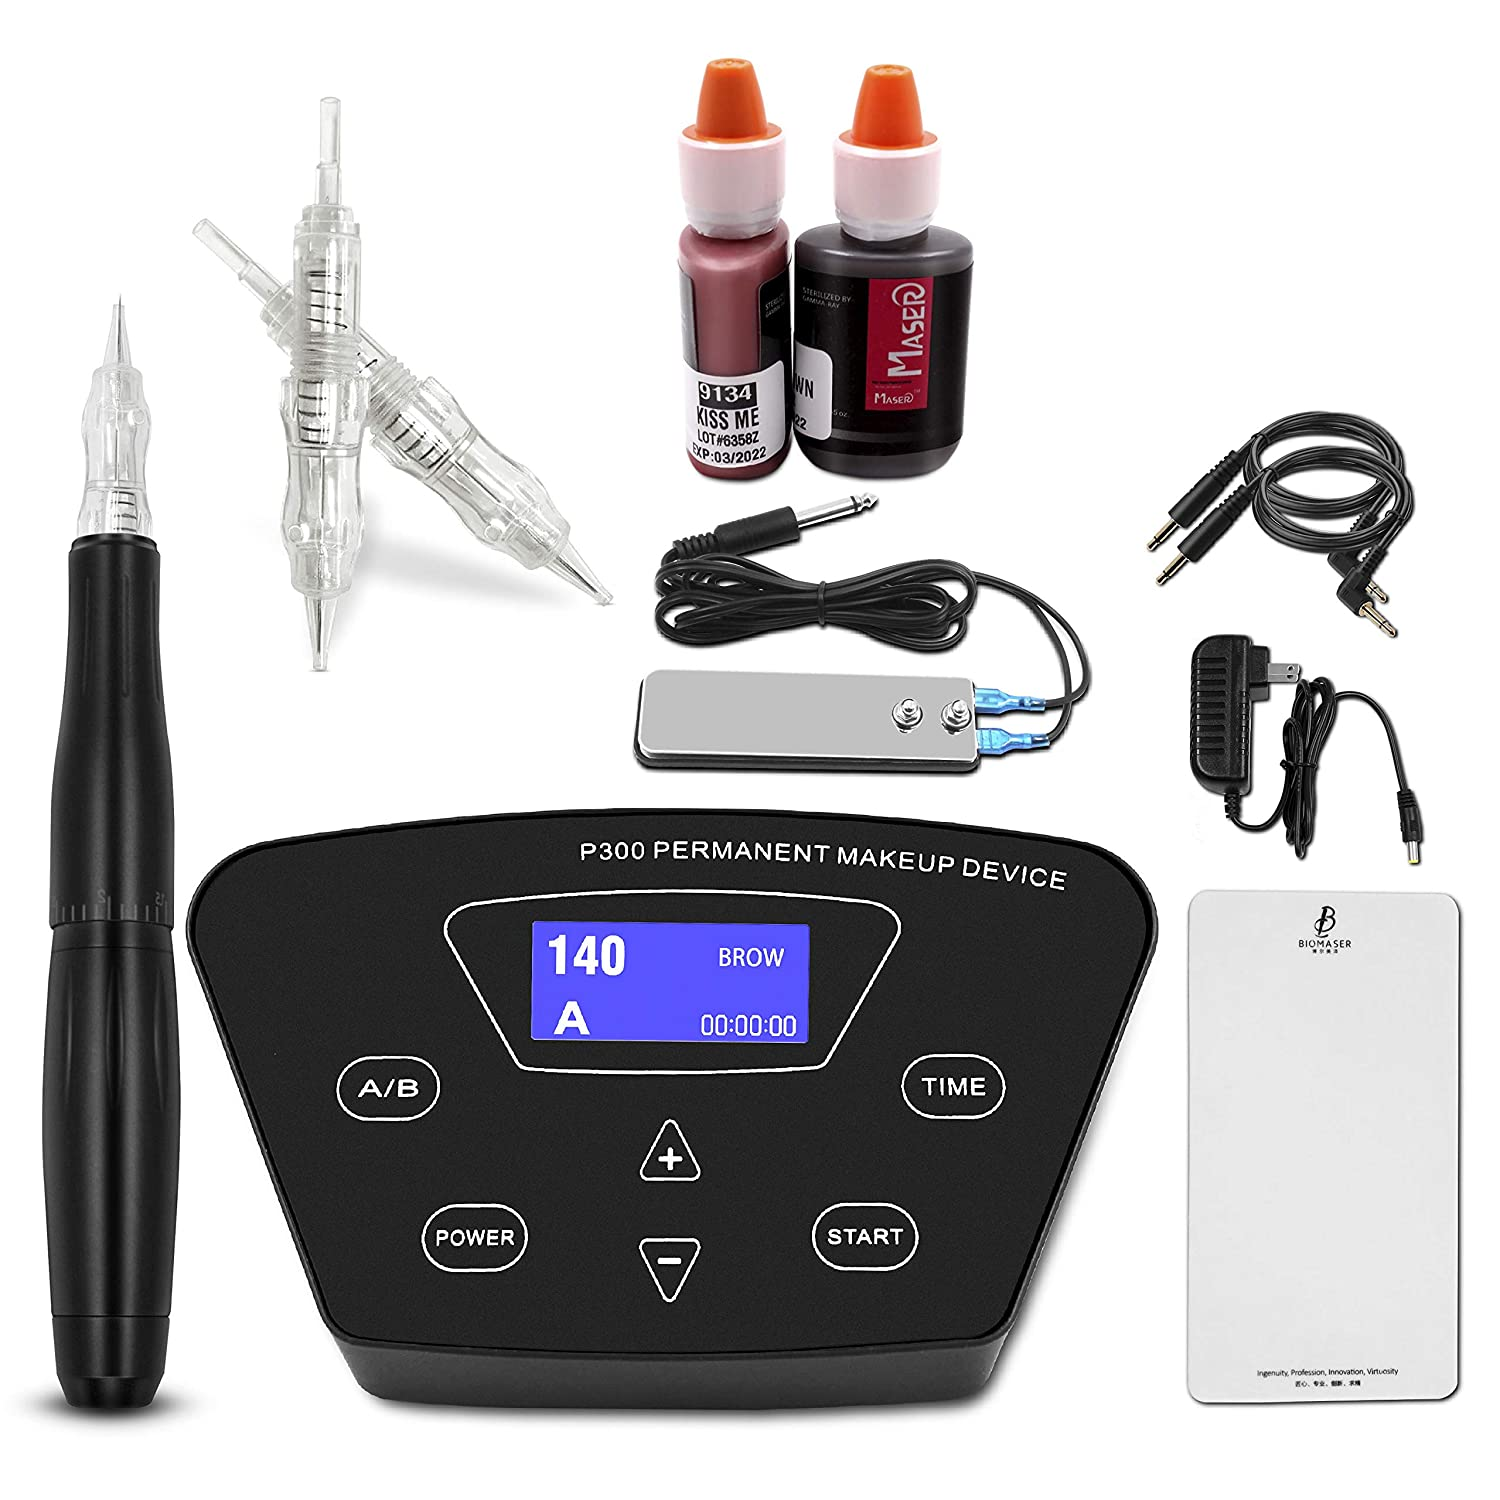 Permanent Makeup Machine - BIOAMSER Permanent Makeup Tattoo Machine Kit with Foot Pedal Touch Control Power Supply Rotary Tattoo Machine Pen Practice Skin 2 Microblading Inks 10pcs Cartridge Needles